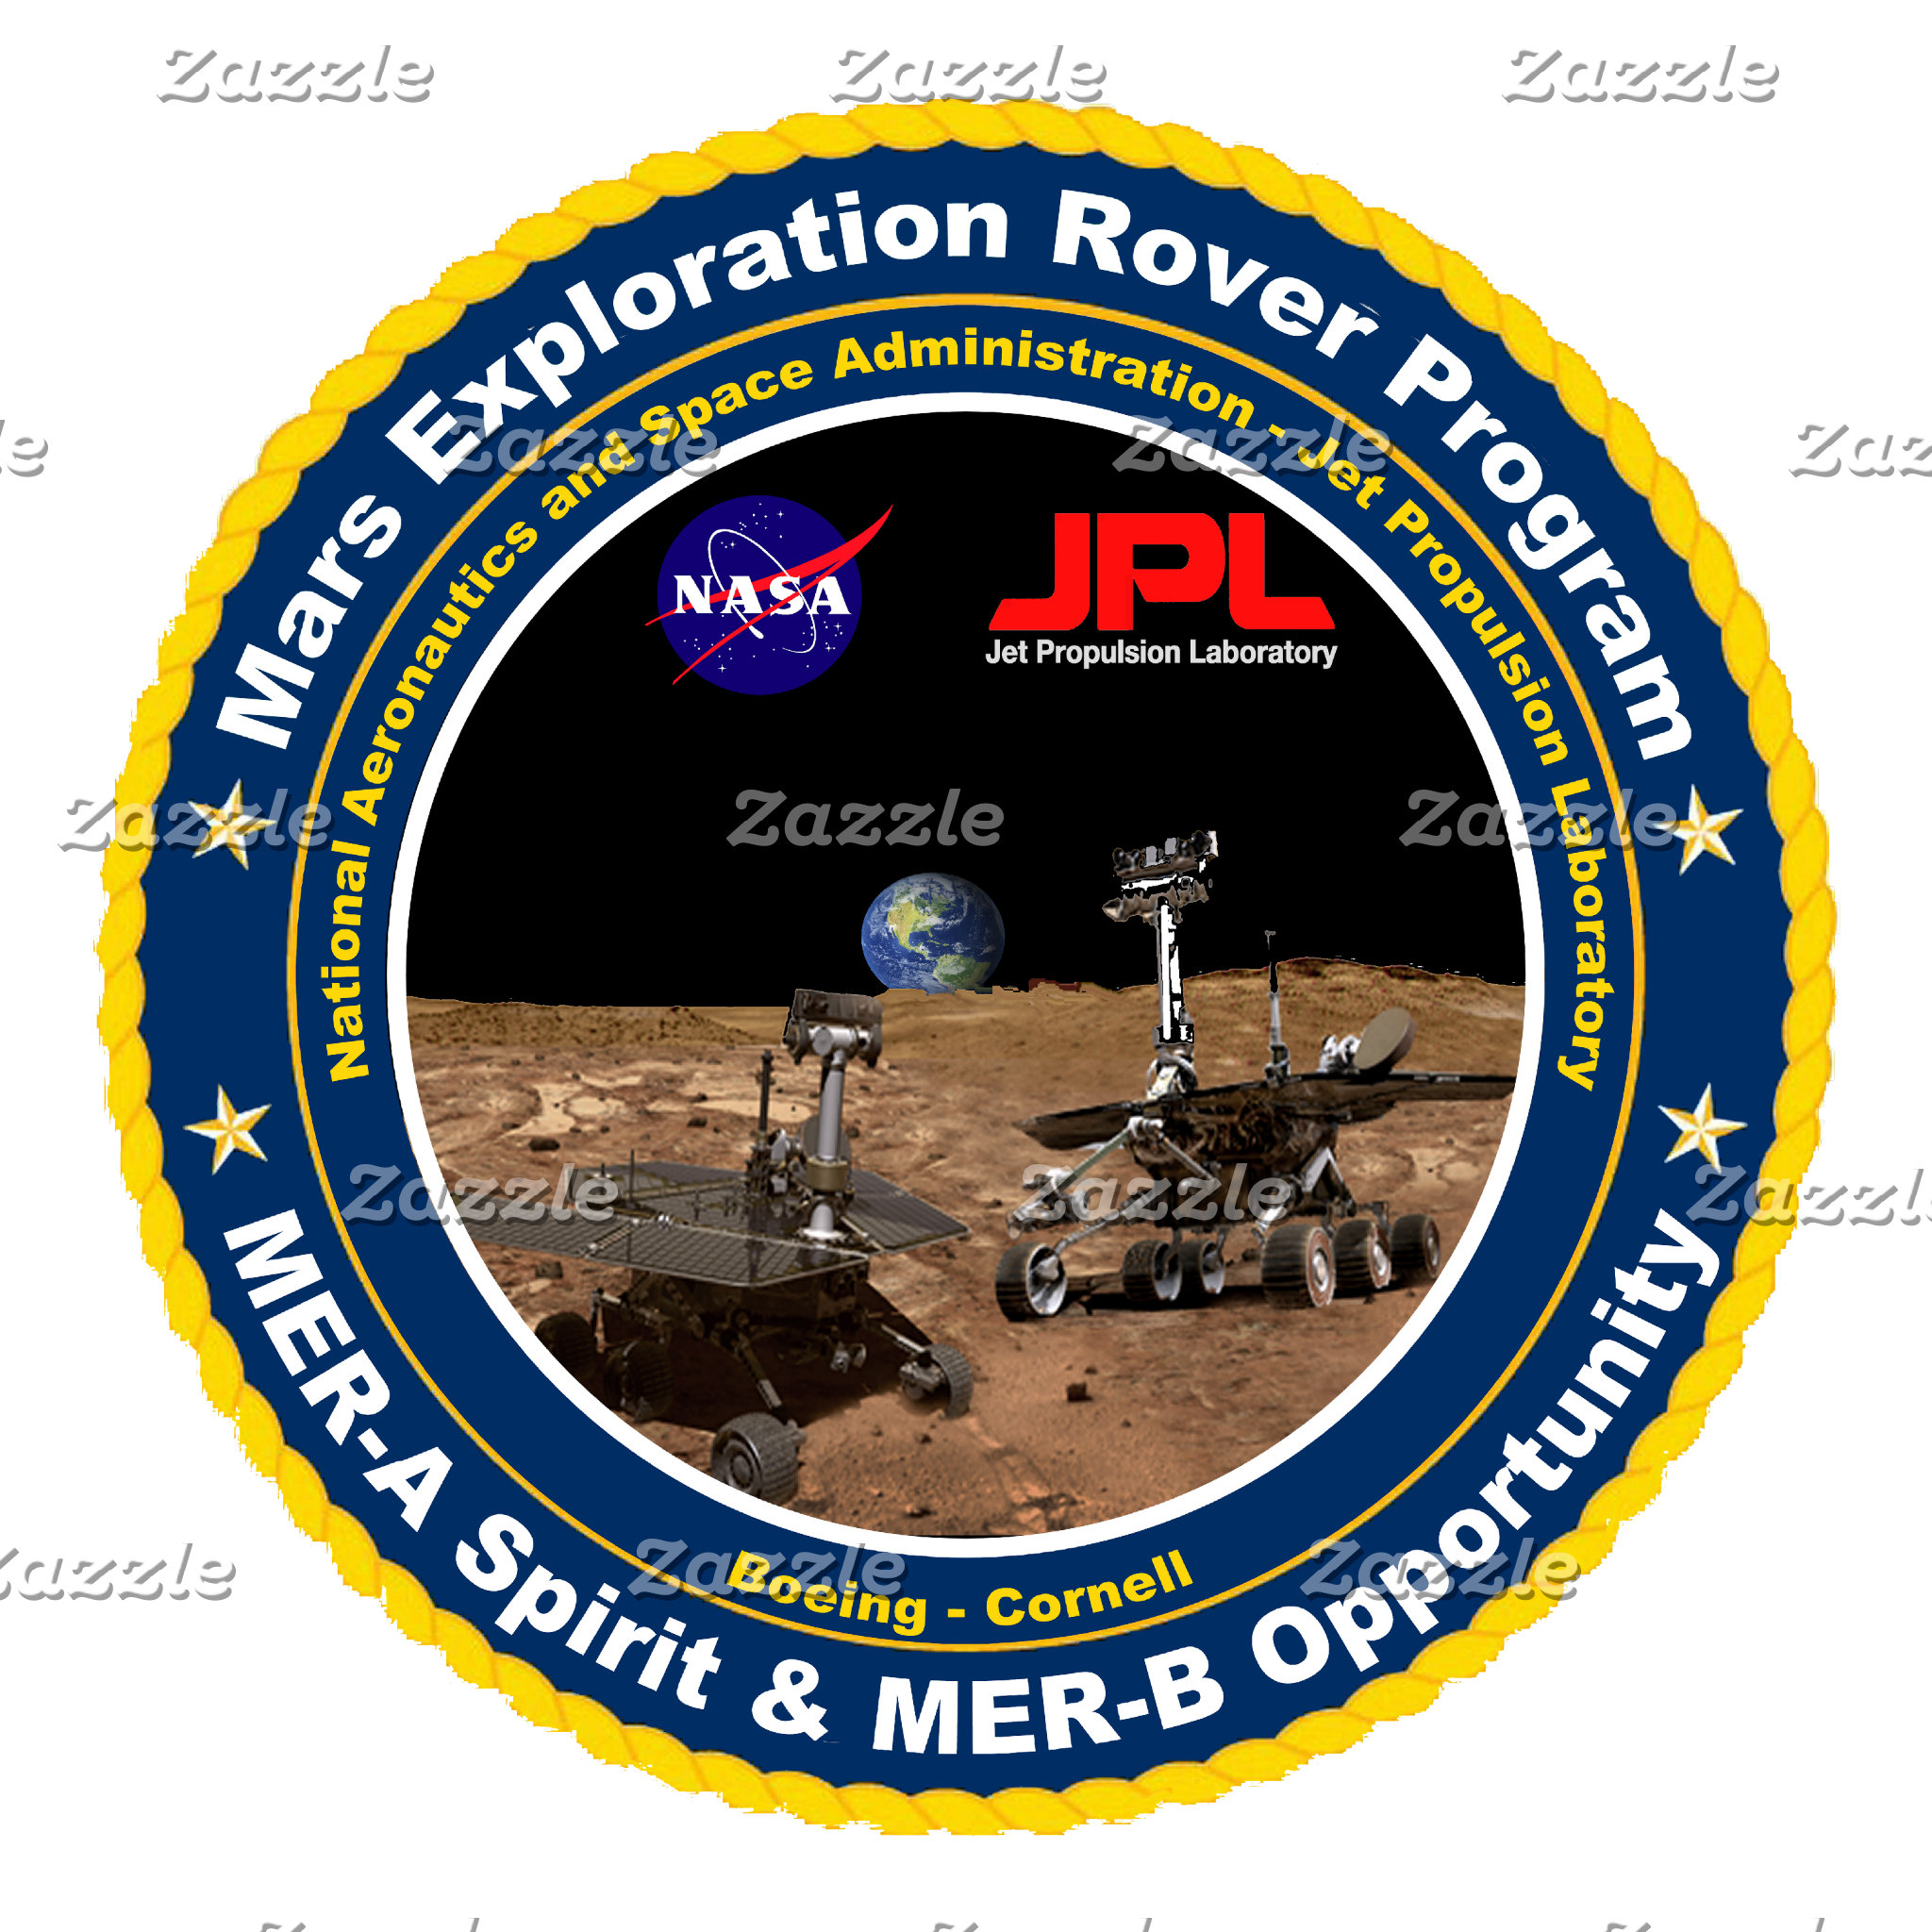 Unmanned Space Mission Logos